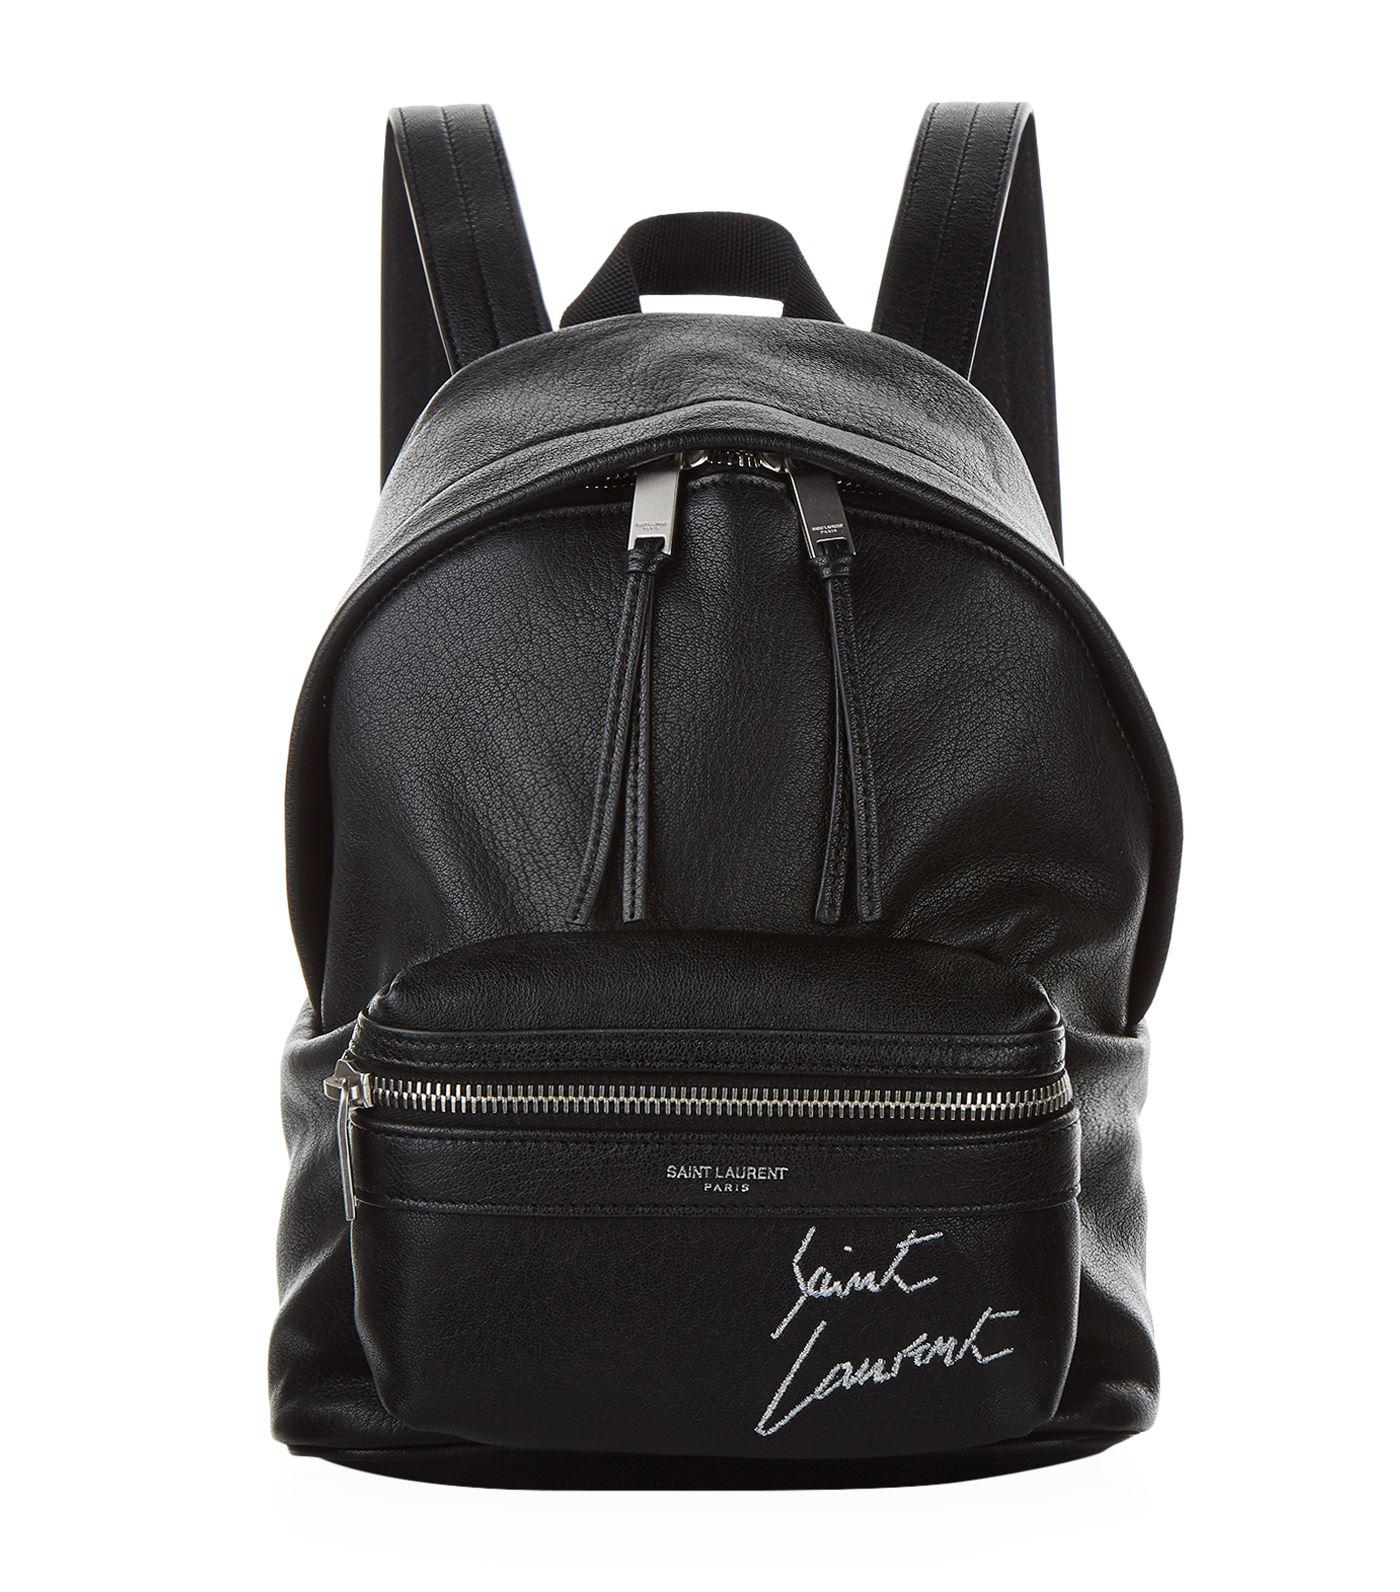 69b6da2a5 Saint Laurent Mini Embroidered Toy City Backpack in Black - Lyst